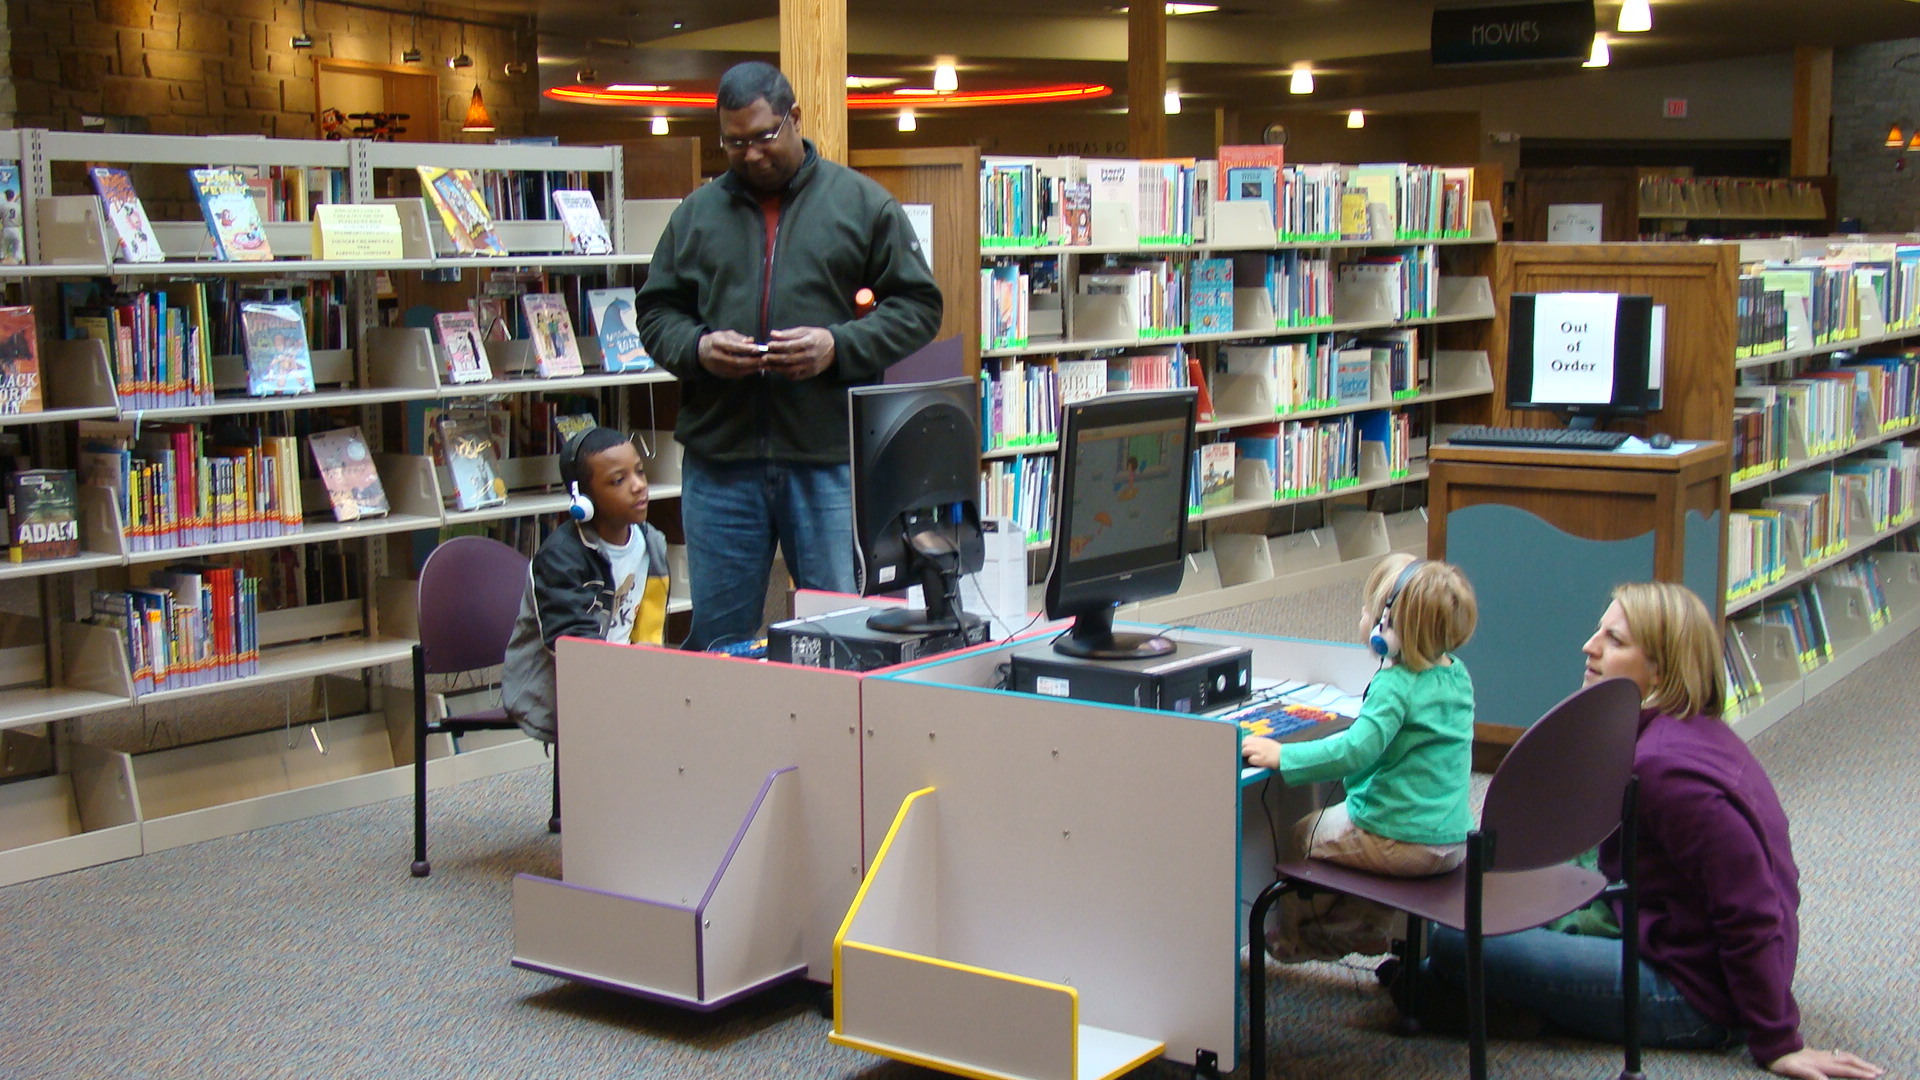 Dad spending time with kid at the community library's computer